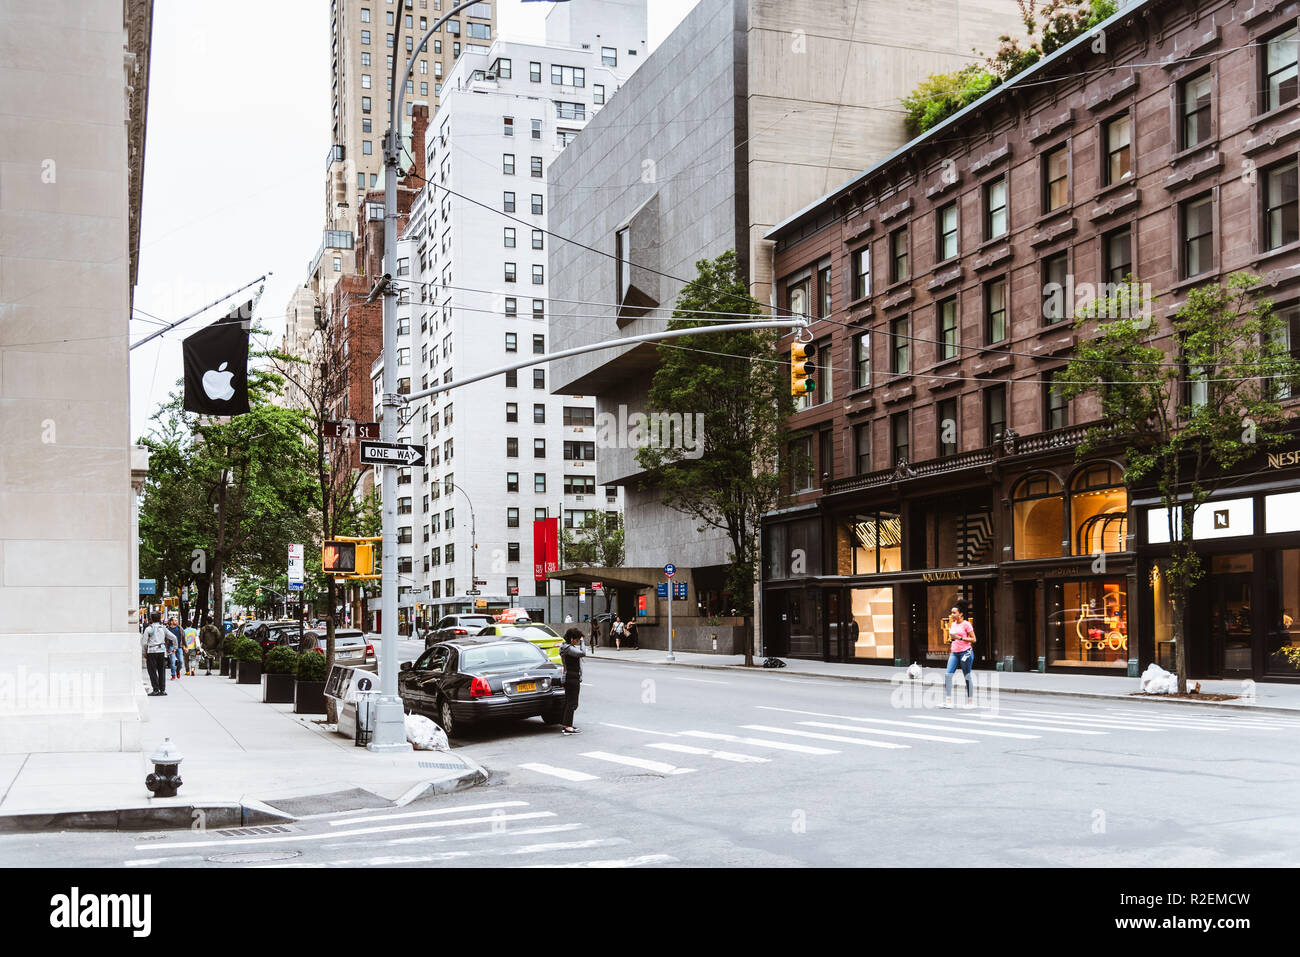 New York City, USA - June 24, 2018: Madison Avenue with The Met Breuer museum. It is a museum of modern and contemporary art in the Upper East Side of - Stock Image